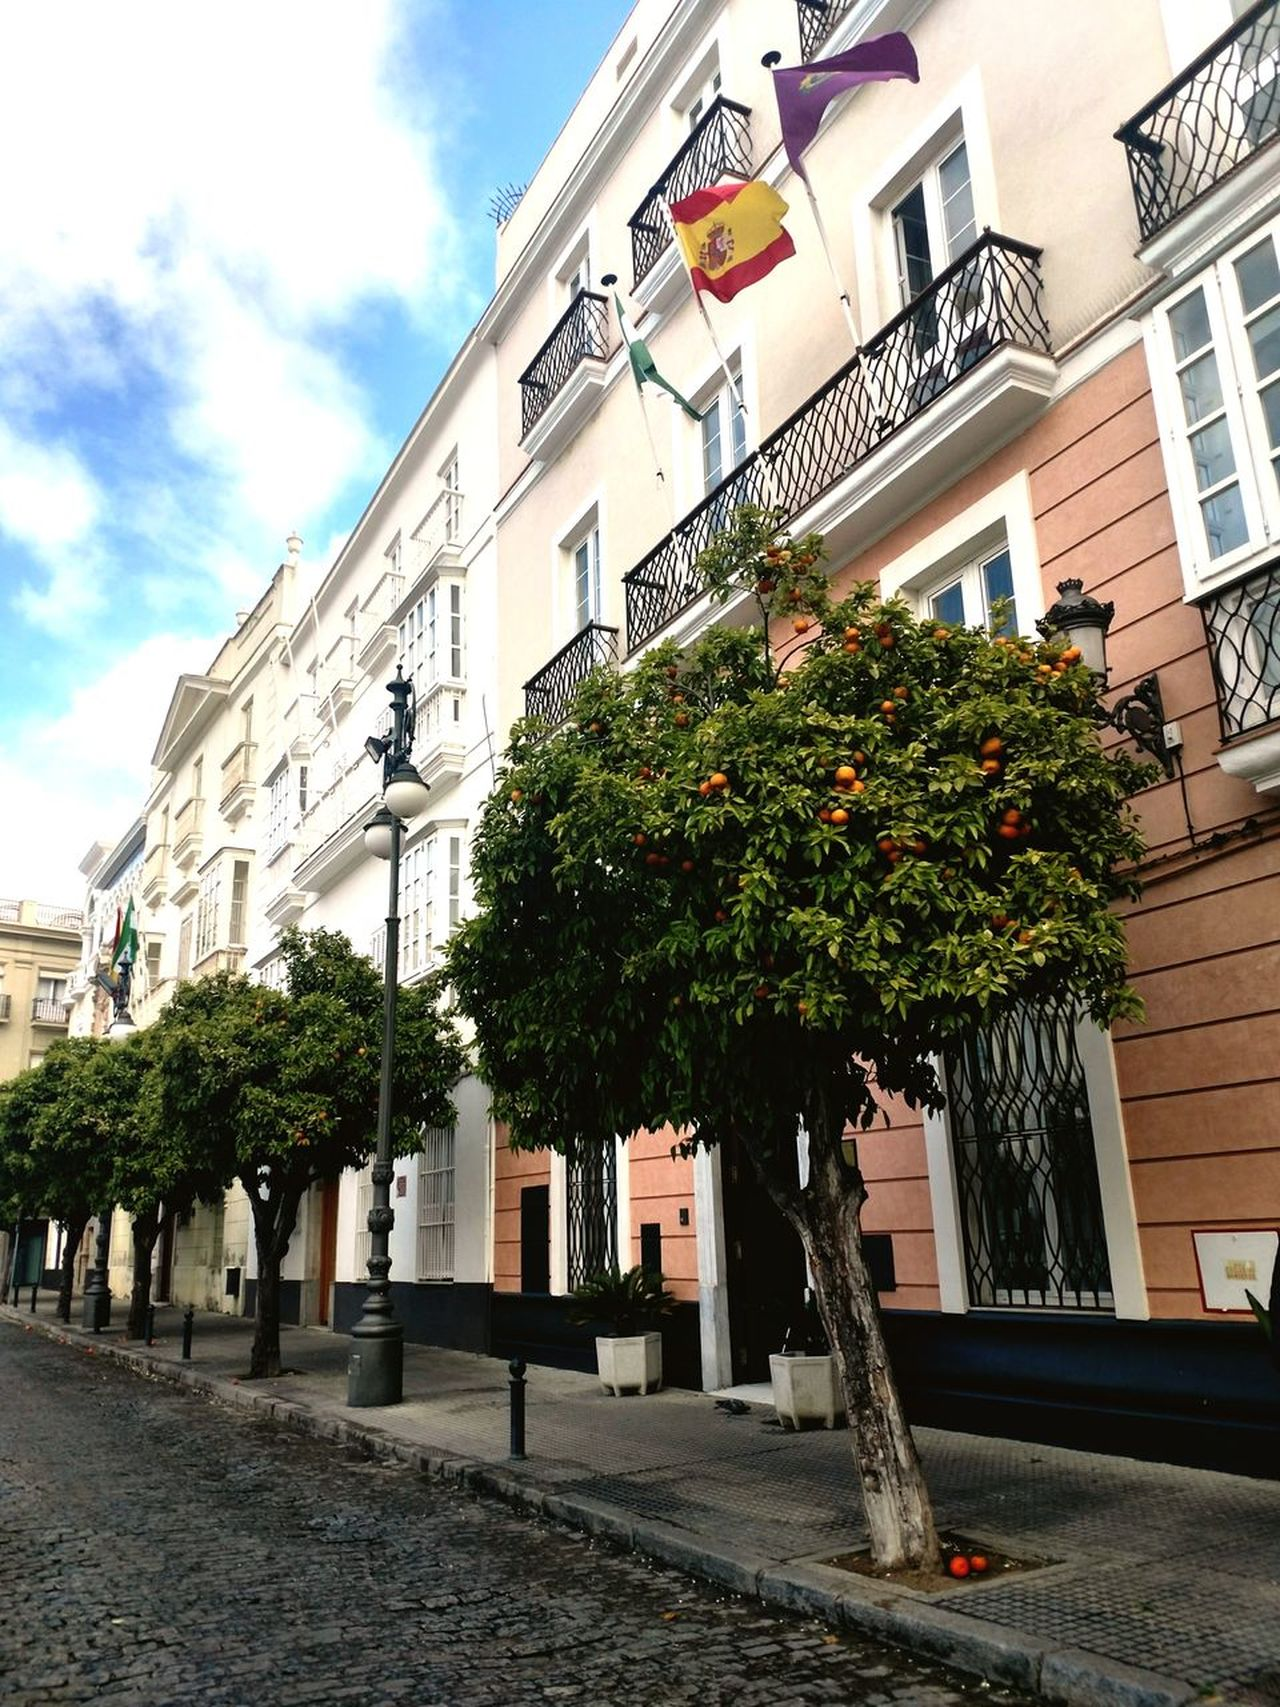 Spring in Spain ... No People Tree Architecture Outdoors Building Exterior Walking Around Lifestyle SPAIN History Architecturephotography City Life Streetphotography Turistic Places Freshness Blossom Flower Fruit Orange Sunlight Flag Plant Springtime Nature City Detail